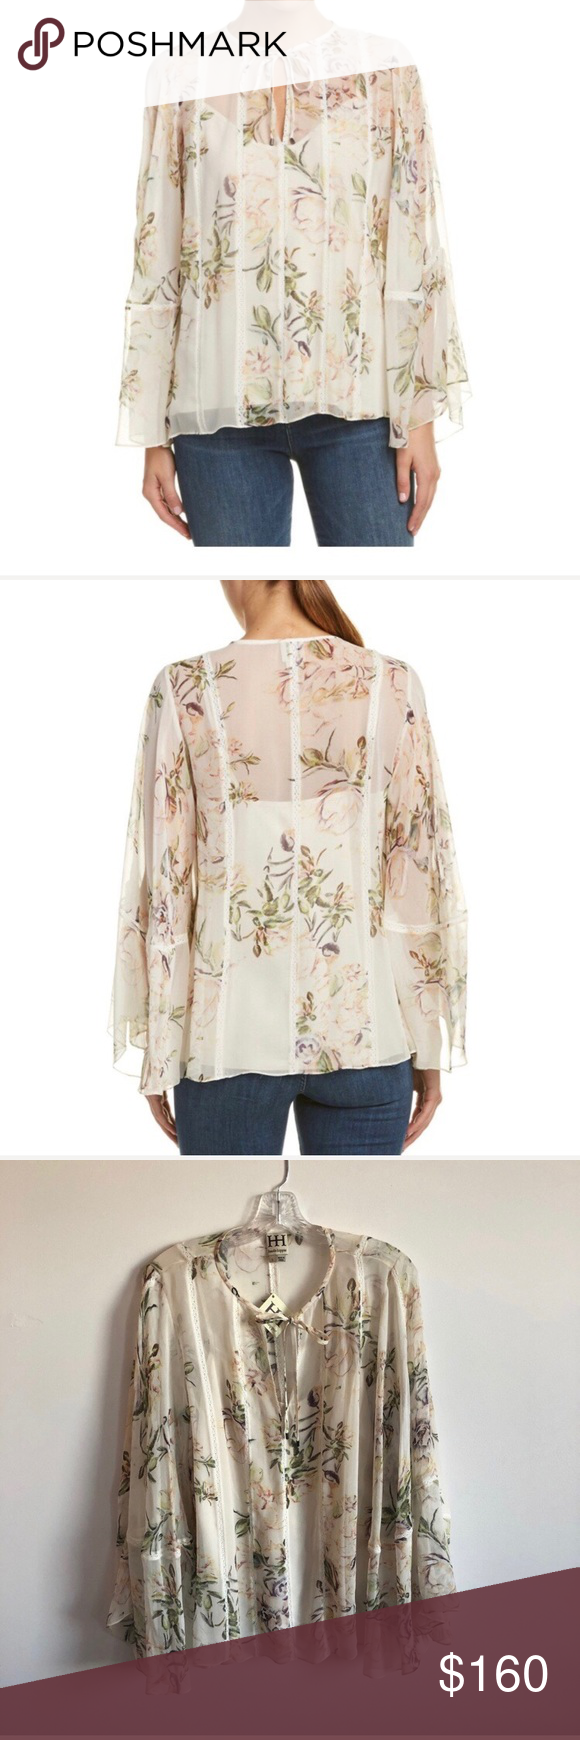 "104269446ba96 NWT Haute Hippie Winds Of Change Silk Blouse L- 24"" Floral Print Design  With Lace Ribbon Inserts"